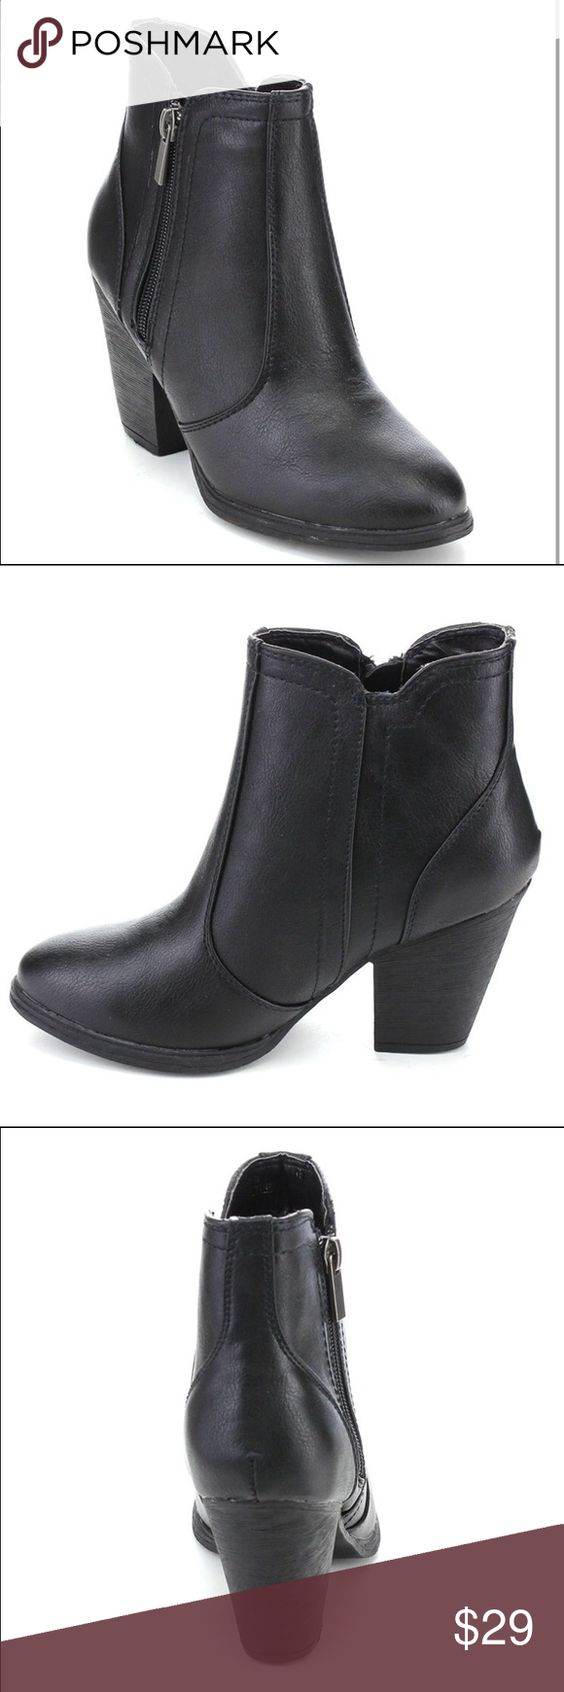 PERFECT! 🍁Love these Black ankle boots for fall🍁 Ladies size 8.5 US Dollhouse black leather look ankle boots. Outside zipper, fashionable styling and perfect with SOOOO many Autumn/ Winter outfits! Don't miss these! #wardrobeessentials 😘 xx Dollhouse Shoes Ankle Boots & Booties